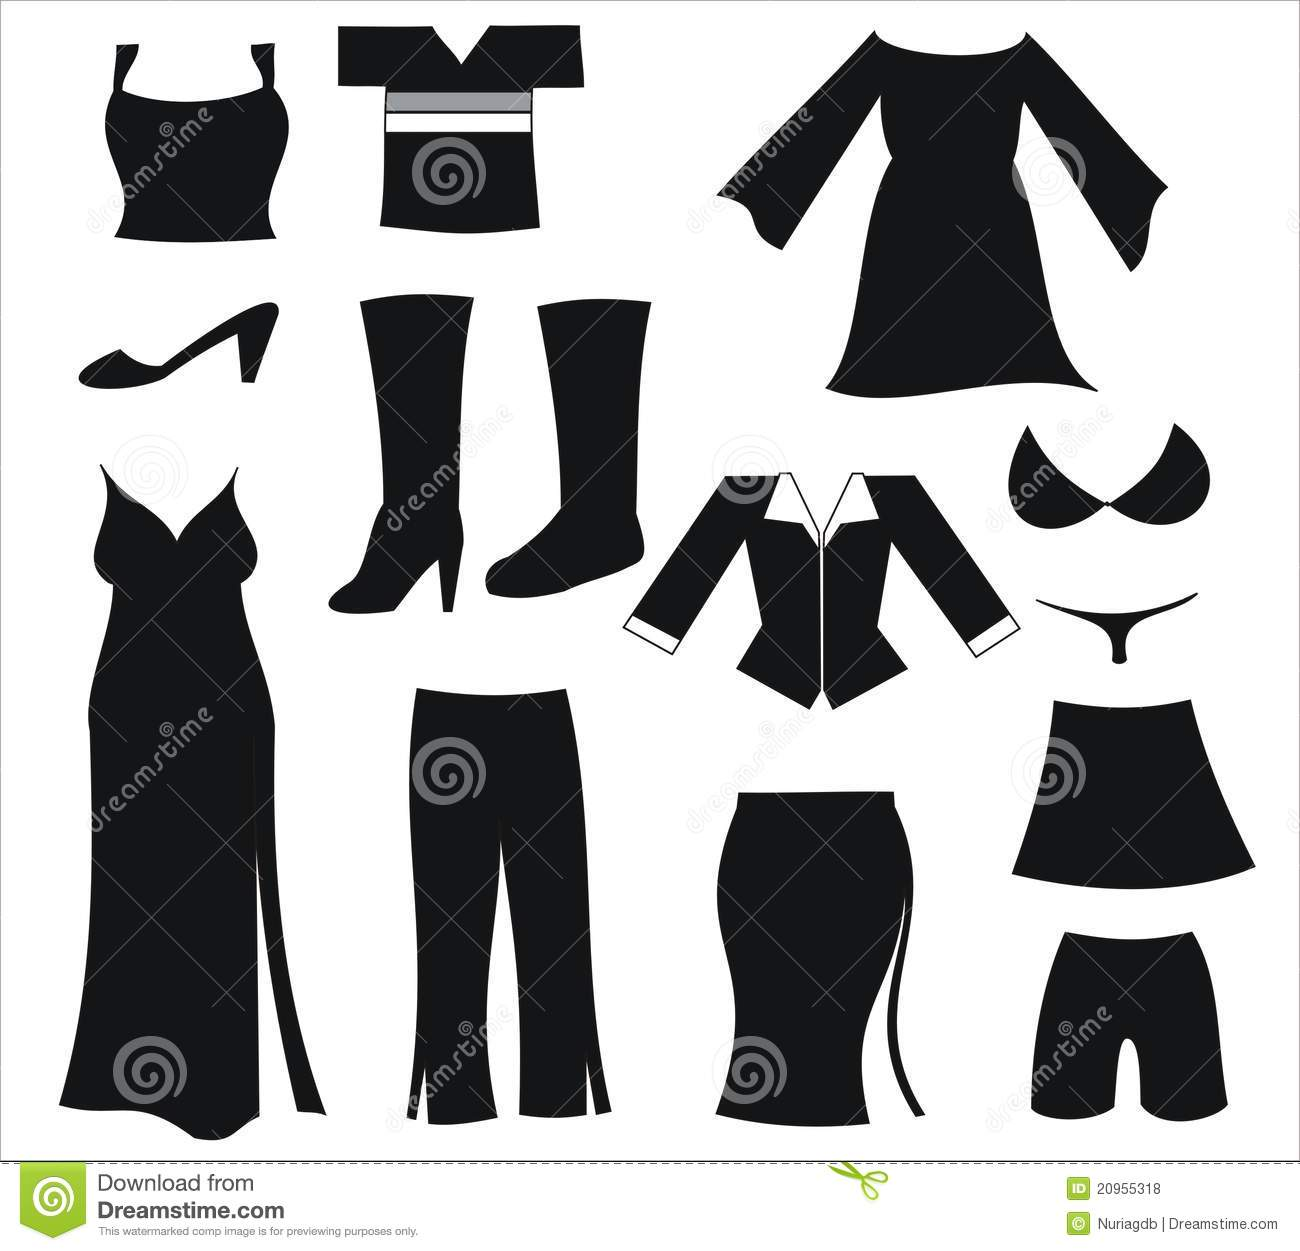 clipart women's clothing - photo #17